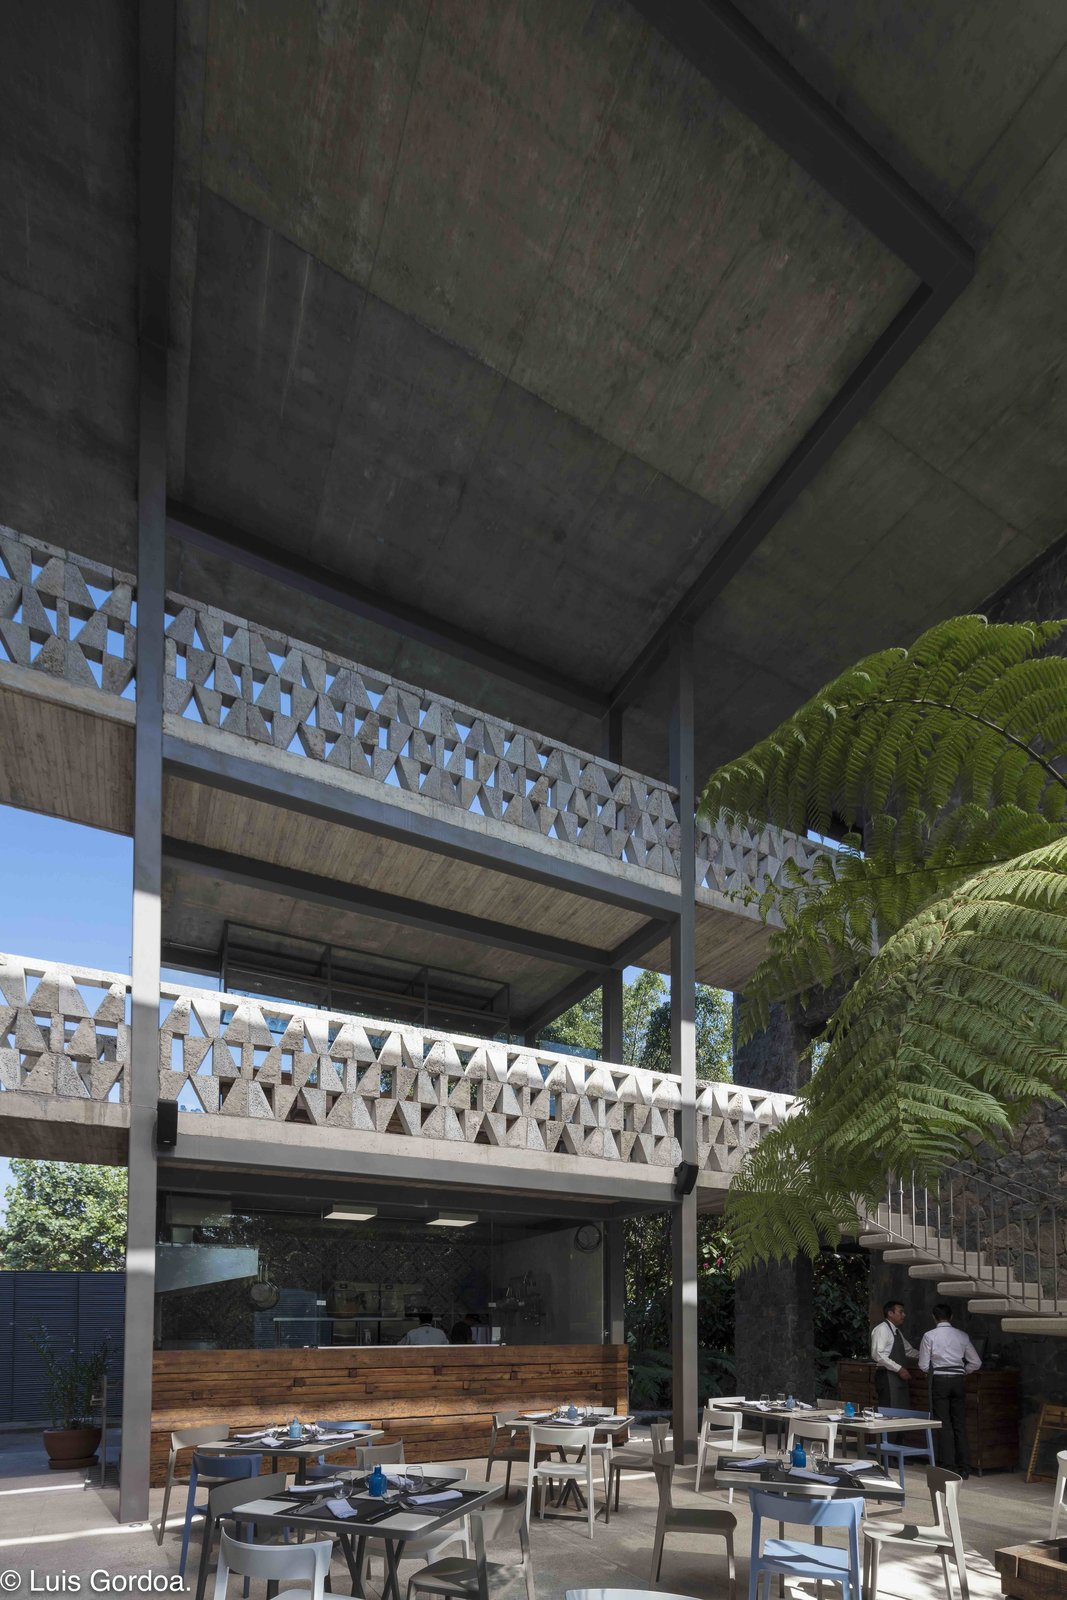 Photo 9 of 12 in A New Hotel in Morelos Combines Local Mexican Elements With Brutalist Architecture